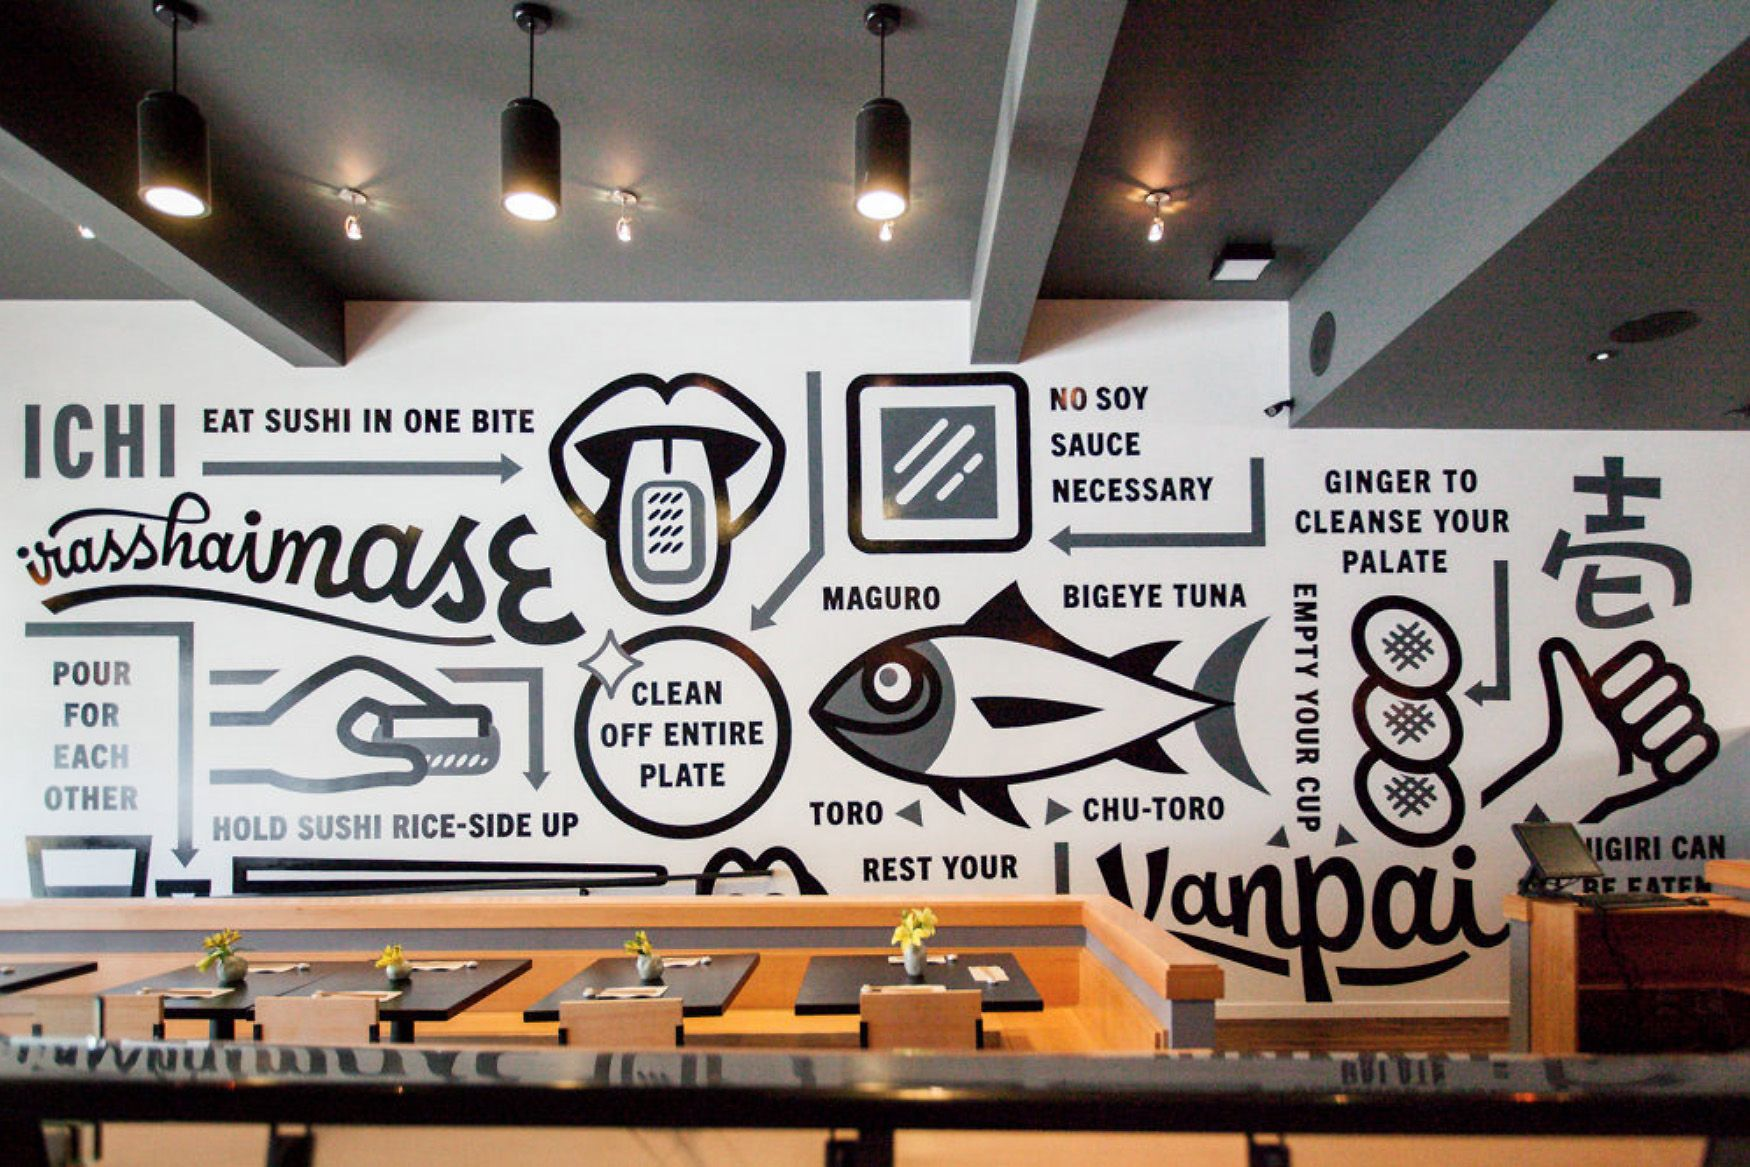 Erik Marinovich ICHI Mural #wall Mural #graphic Design Http://feedly.